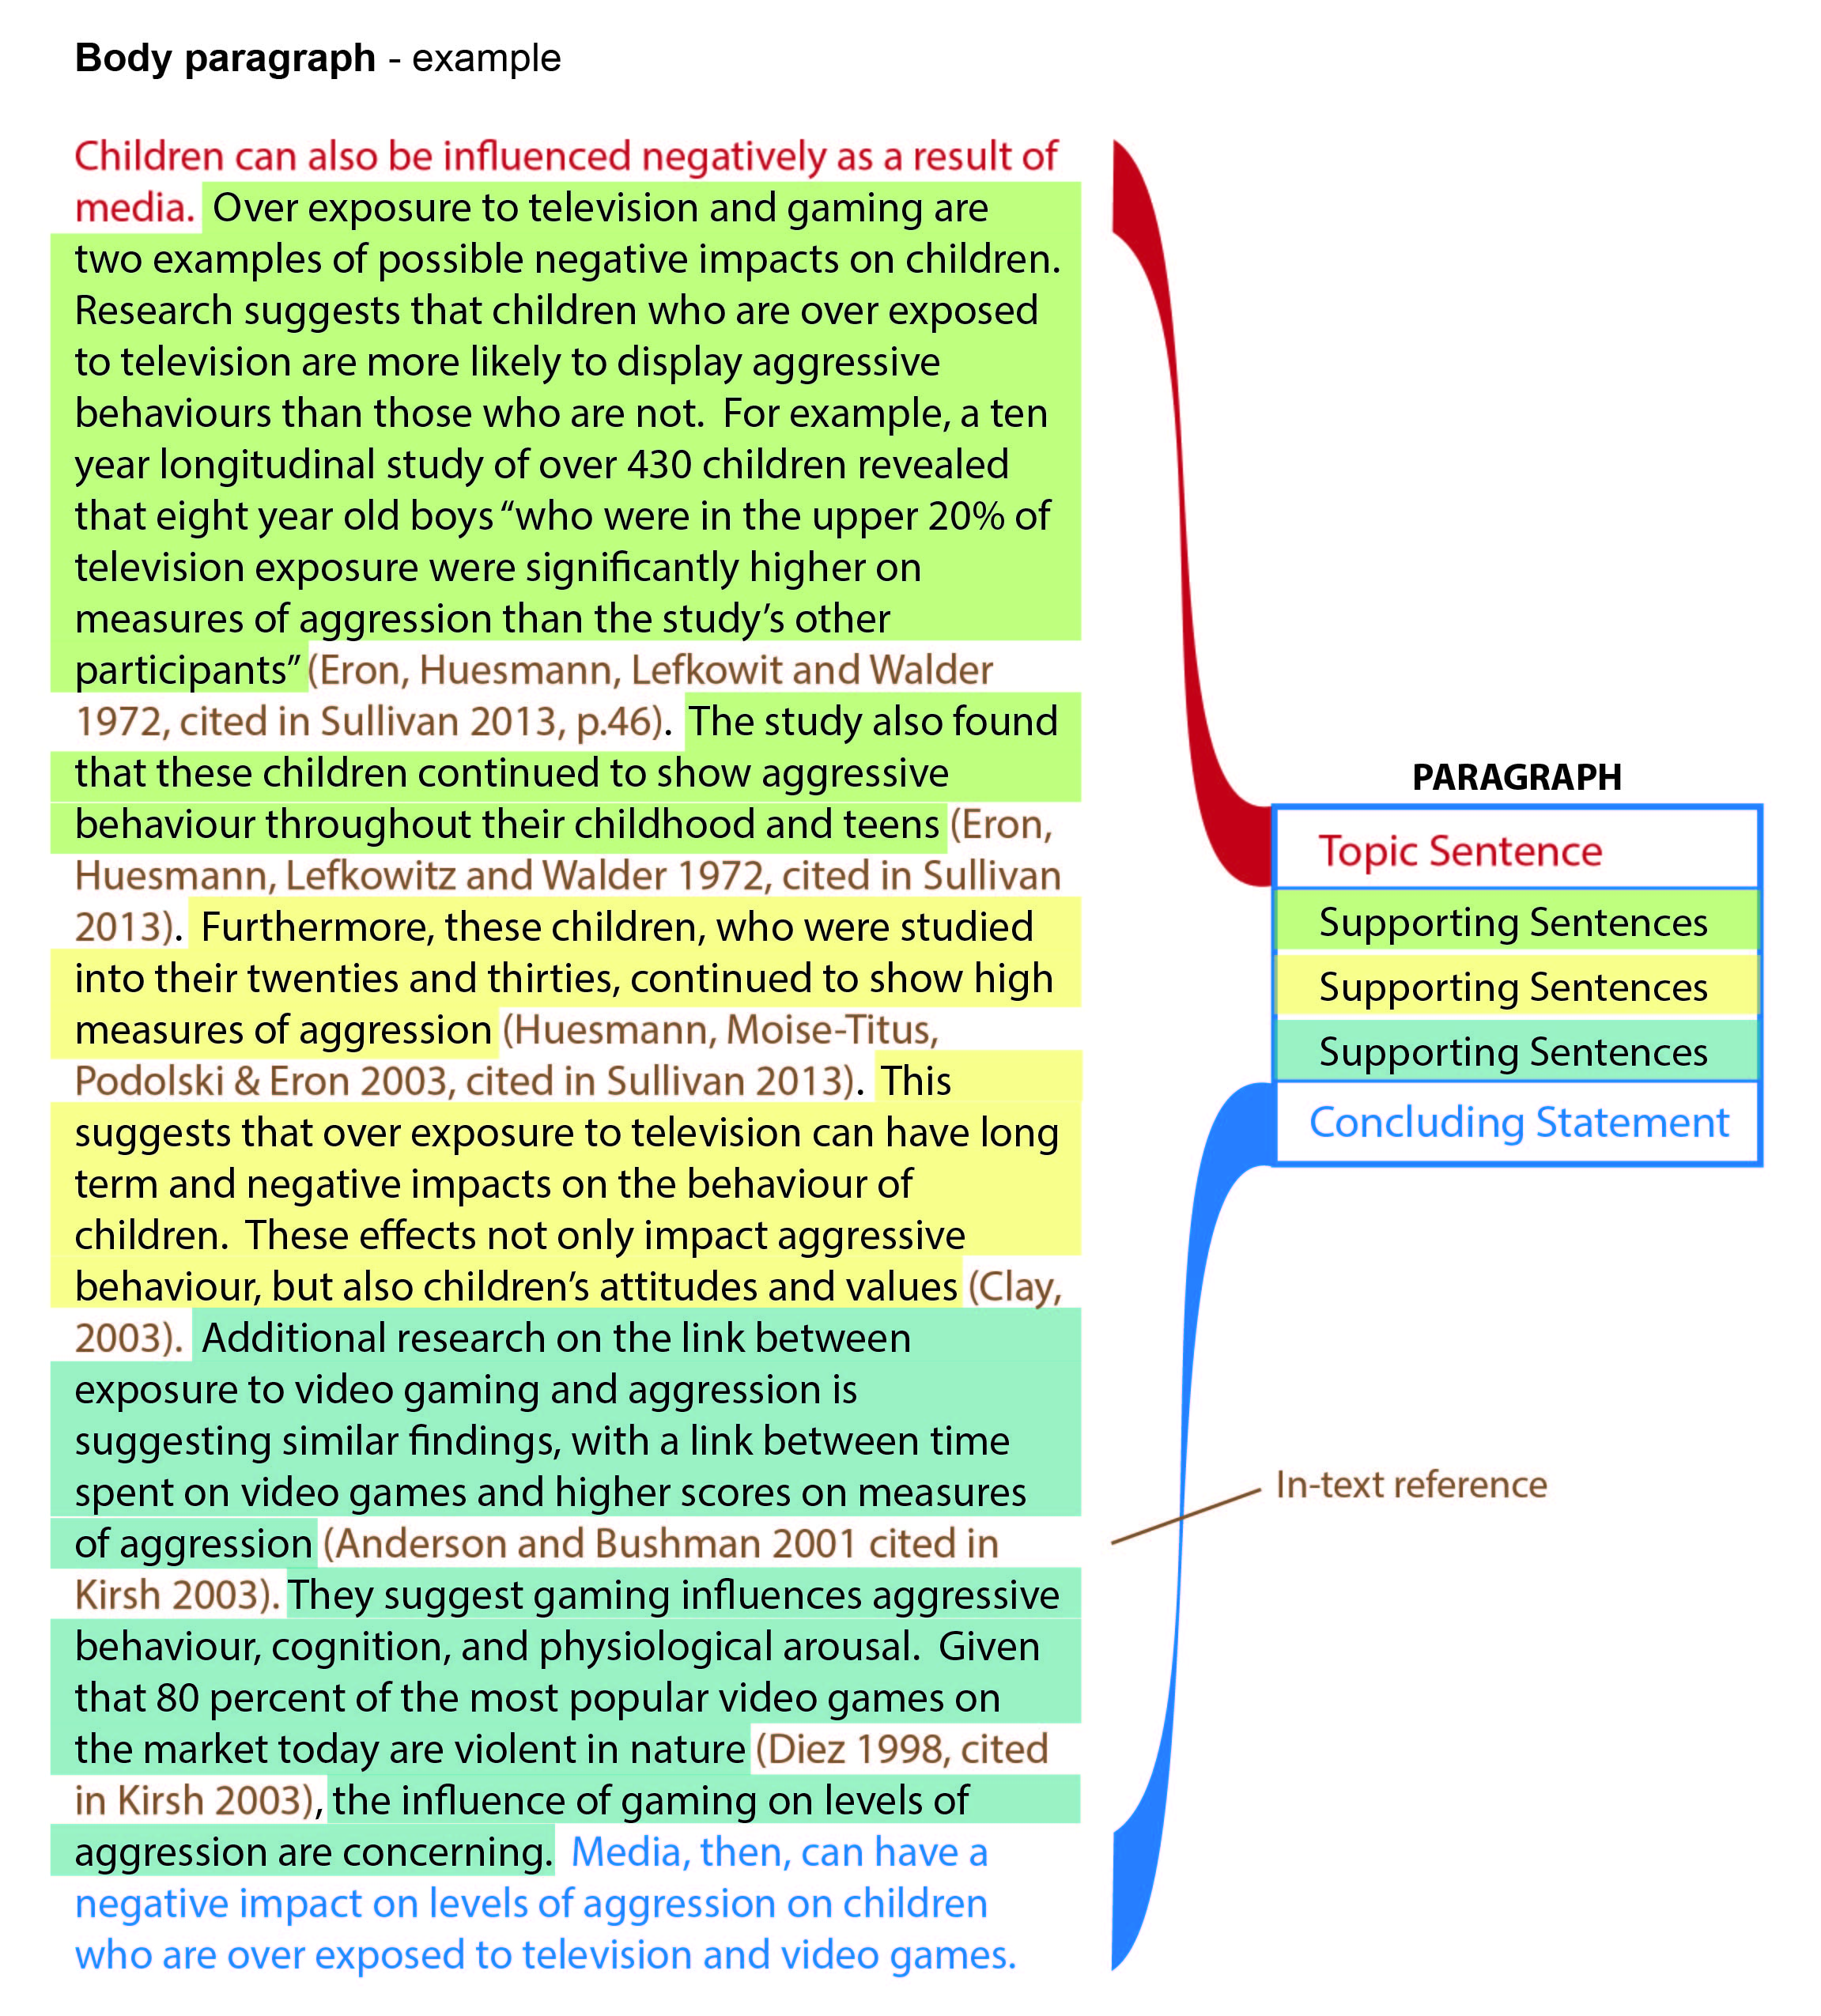 001 Essay Example Paragraph Magnificent Body Conclusion Topic Sentence Template Full